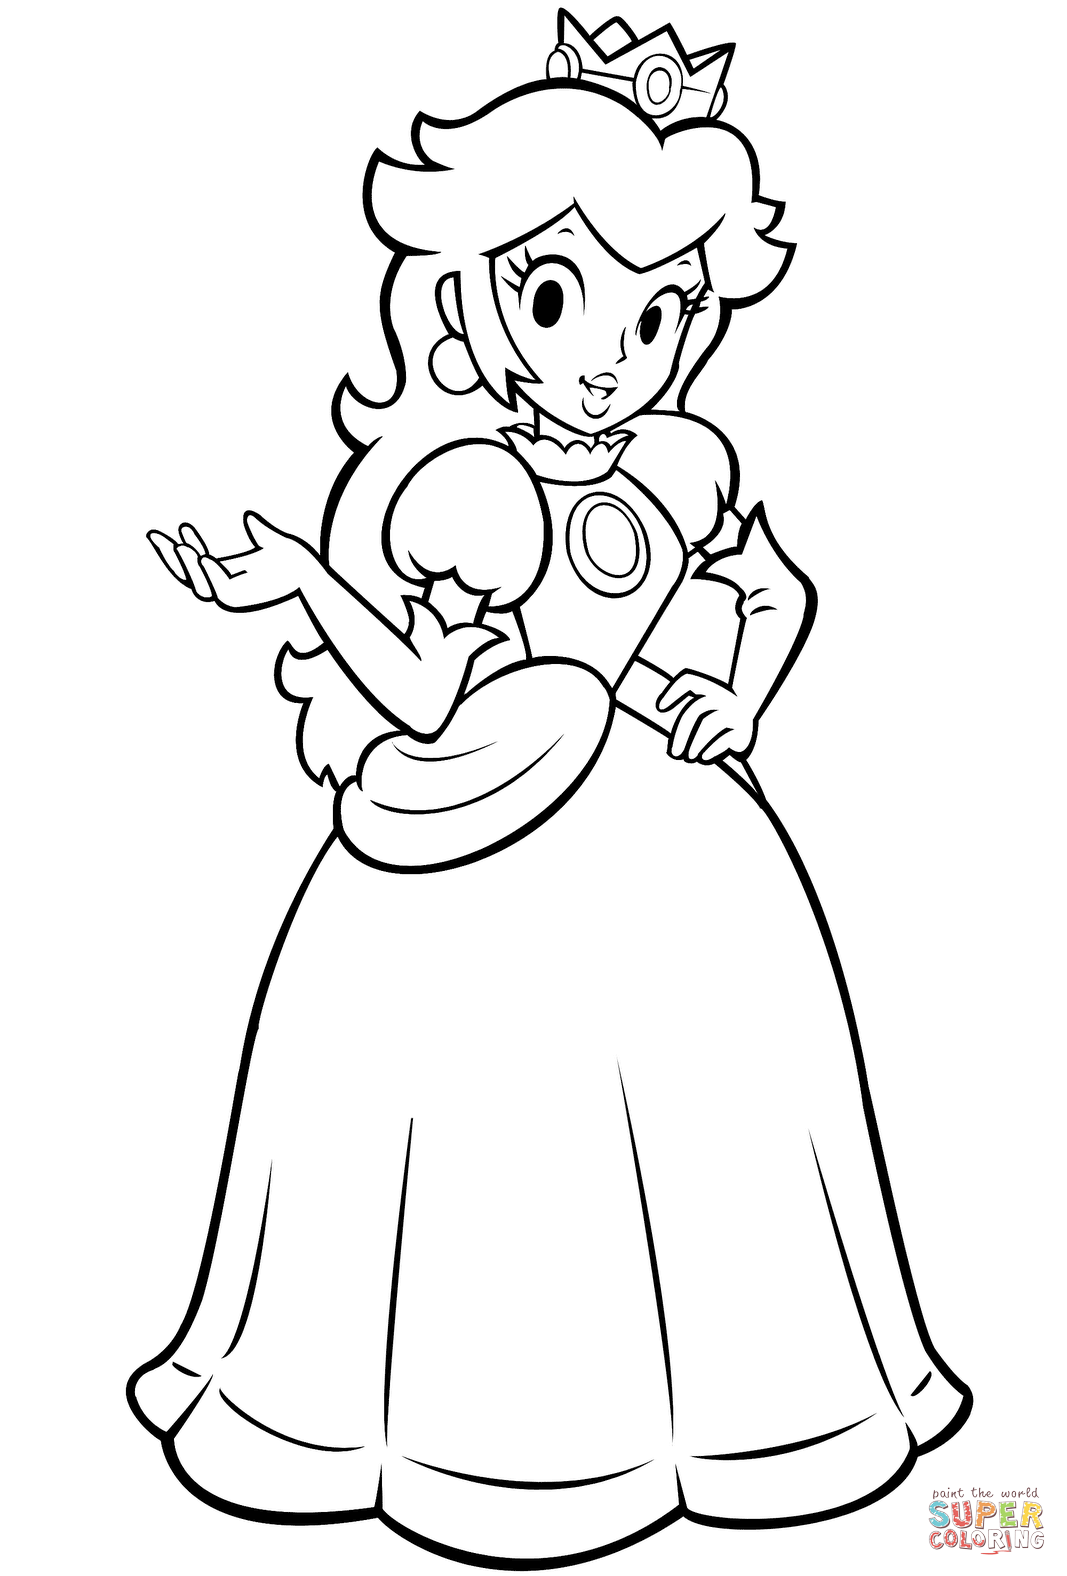 click the pretty princess peach coloring pages to view printable